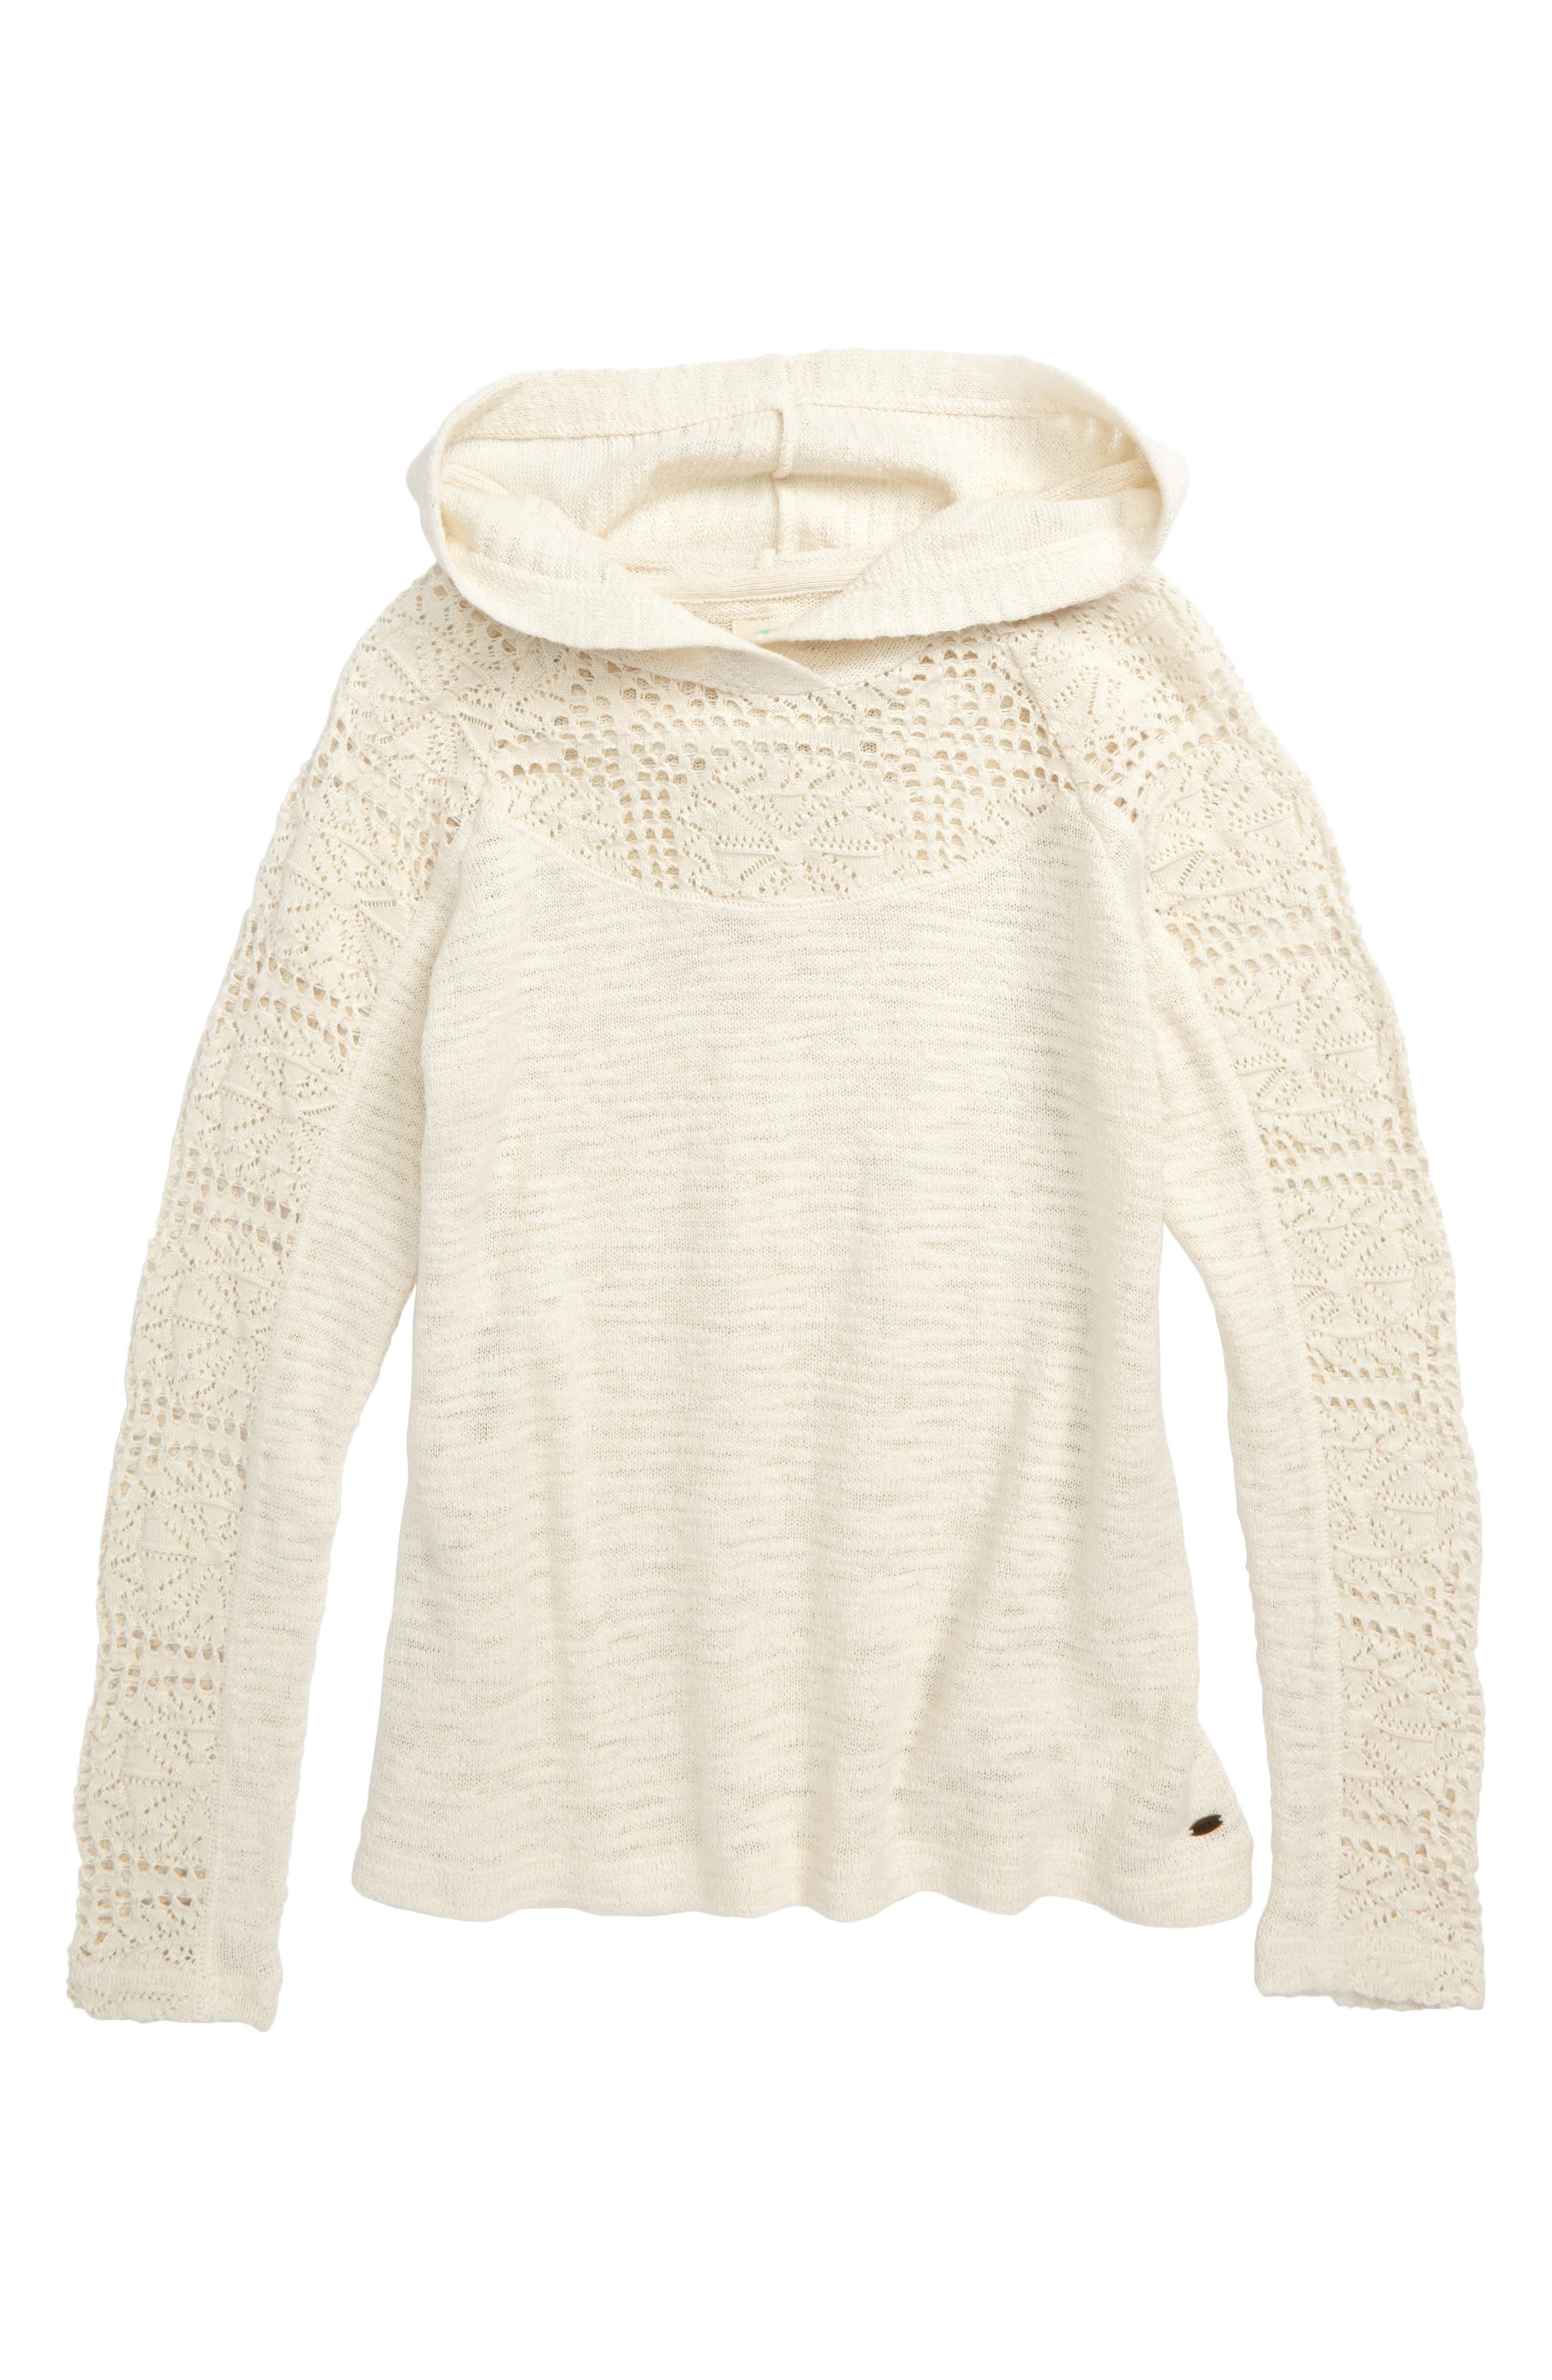 Amore Hooded Sweater,                             Main thumbnail 1, color,                             Naked - Wwh